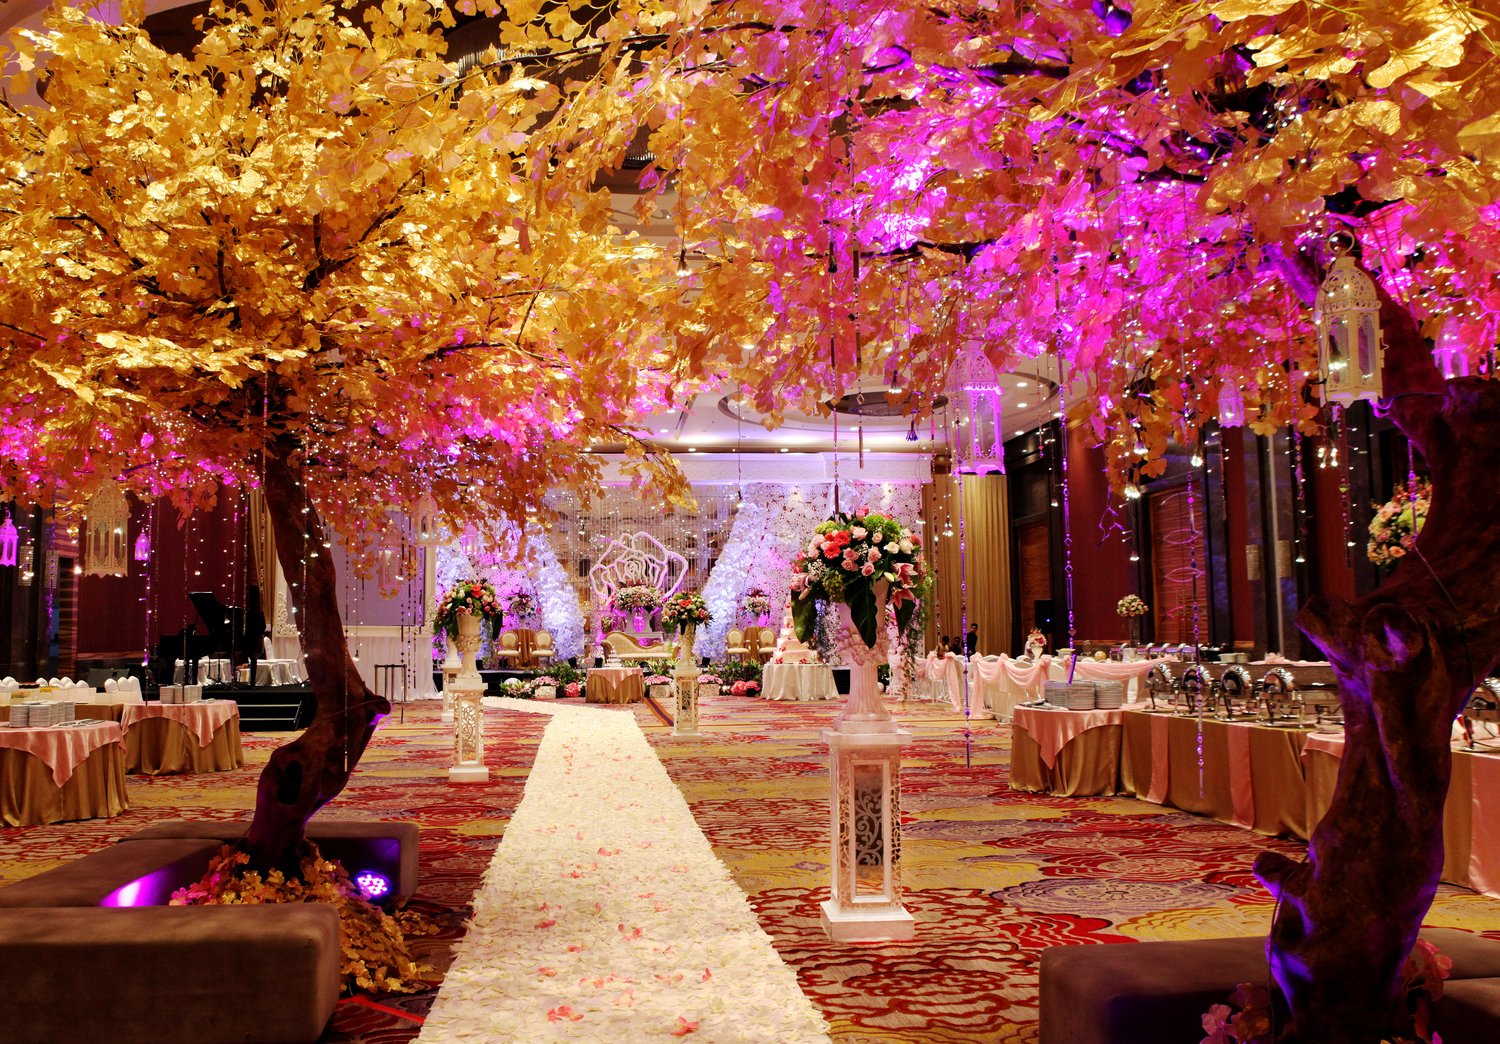 Azalia decorationwedding decoration azalia decoration glamour modern wedding decoration the ballroom emporium jakarta by azalia decoration junglespirit Gallery